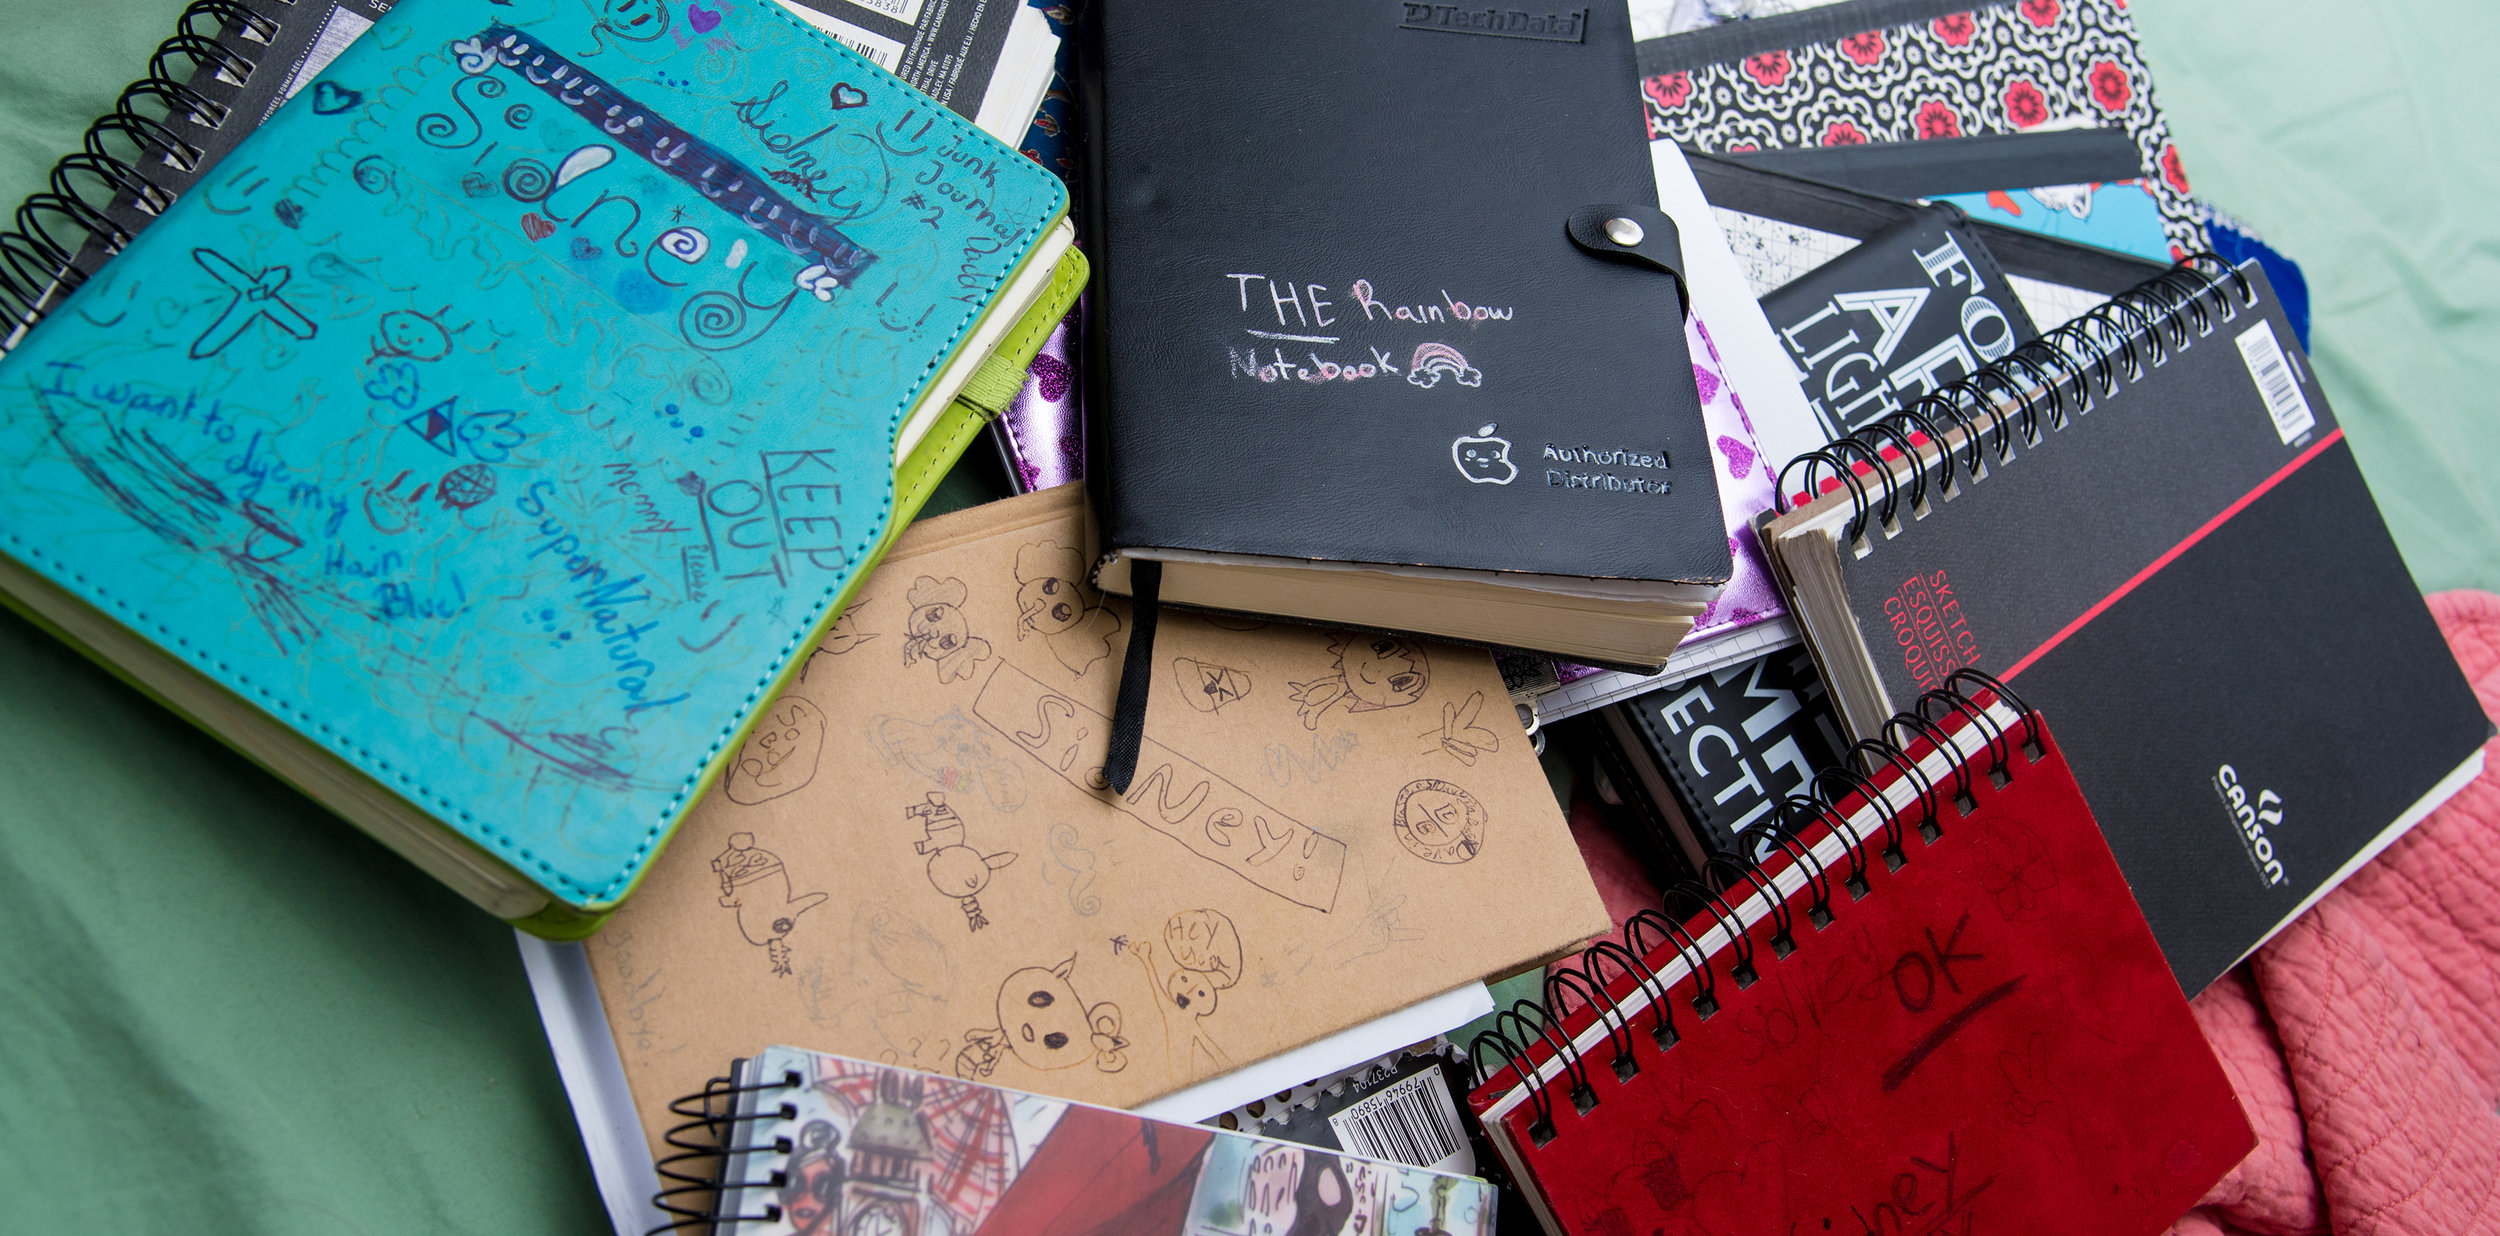 This is a small sampling of her growing sketchbook collection. There are many, many, MANY others. Every single page is covered in pencil and marker.